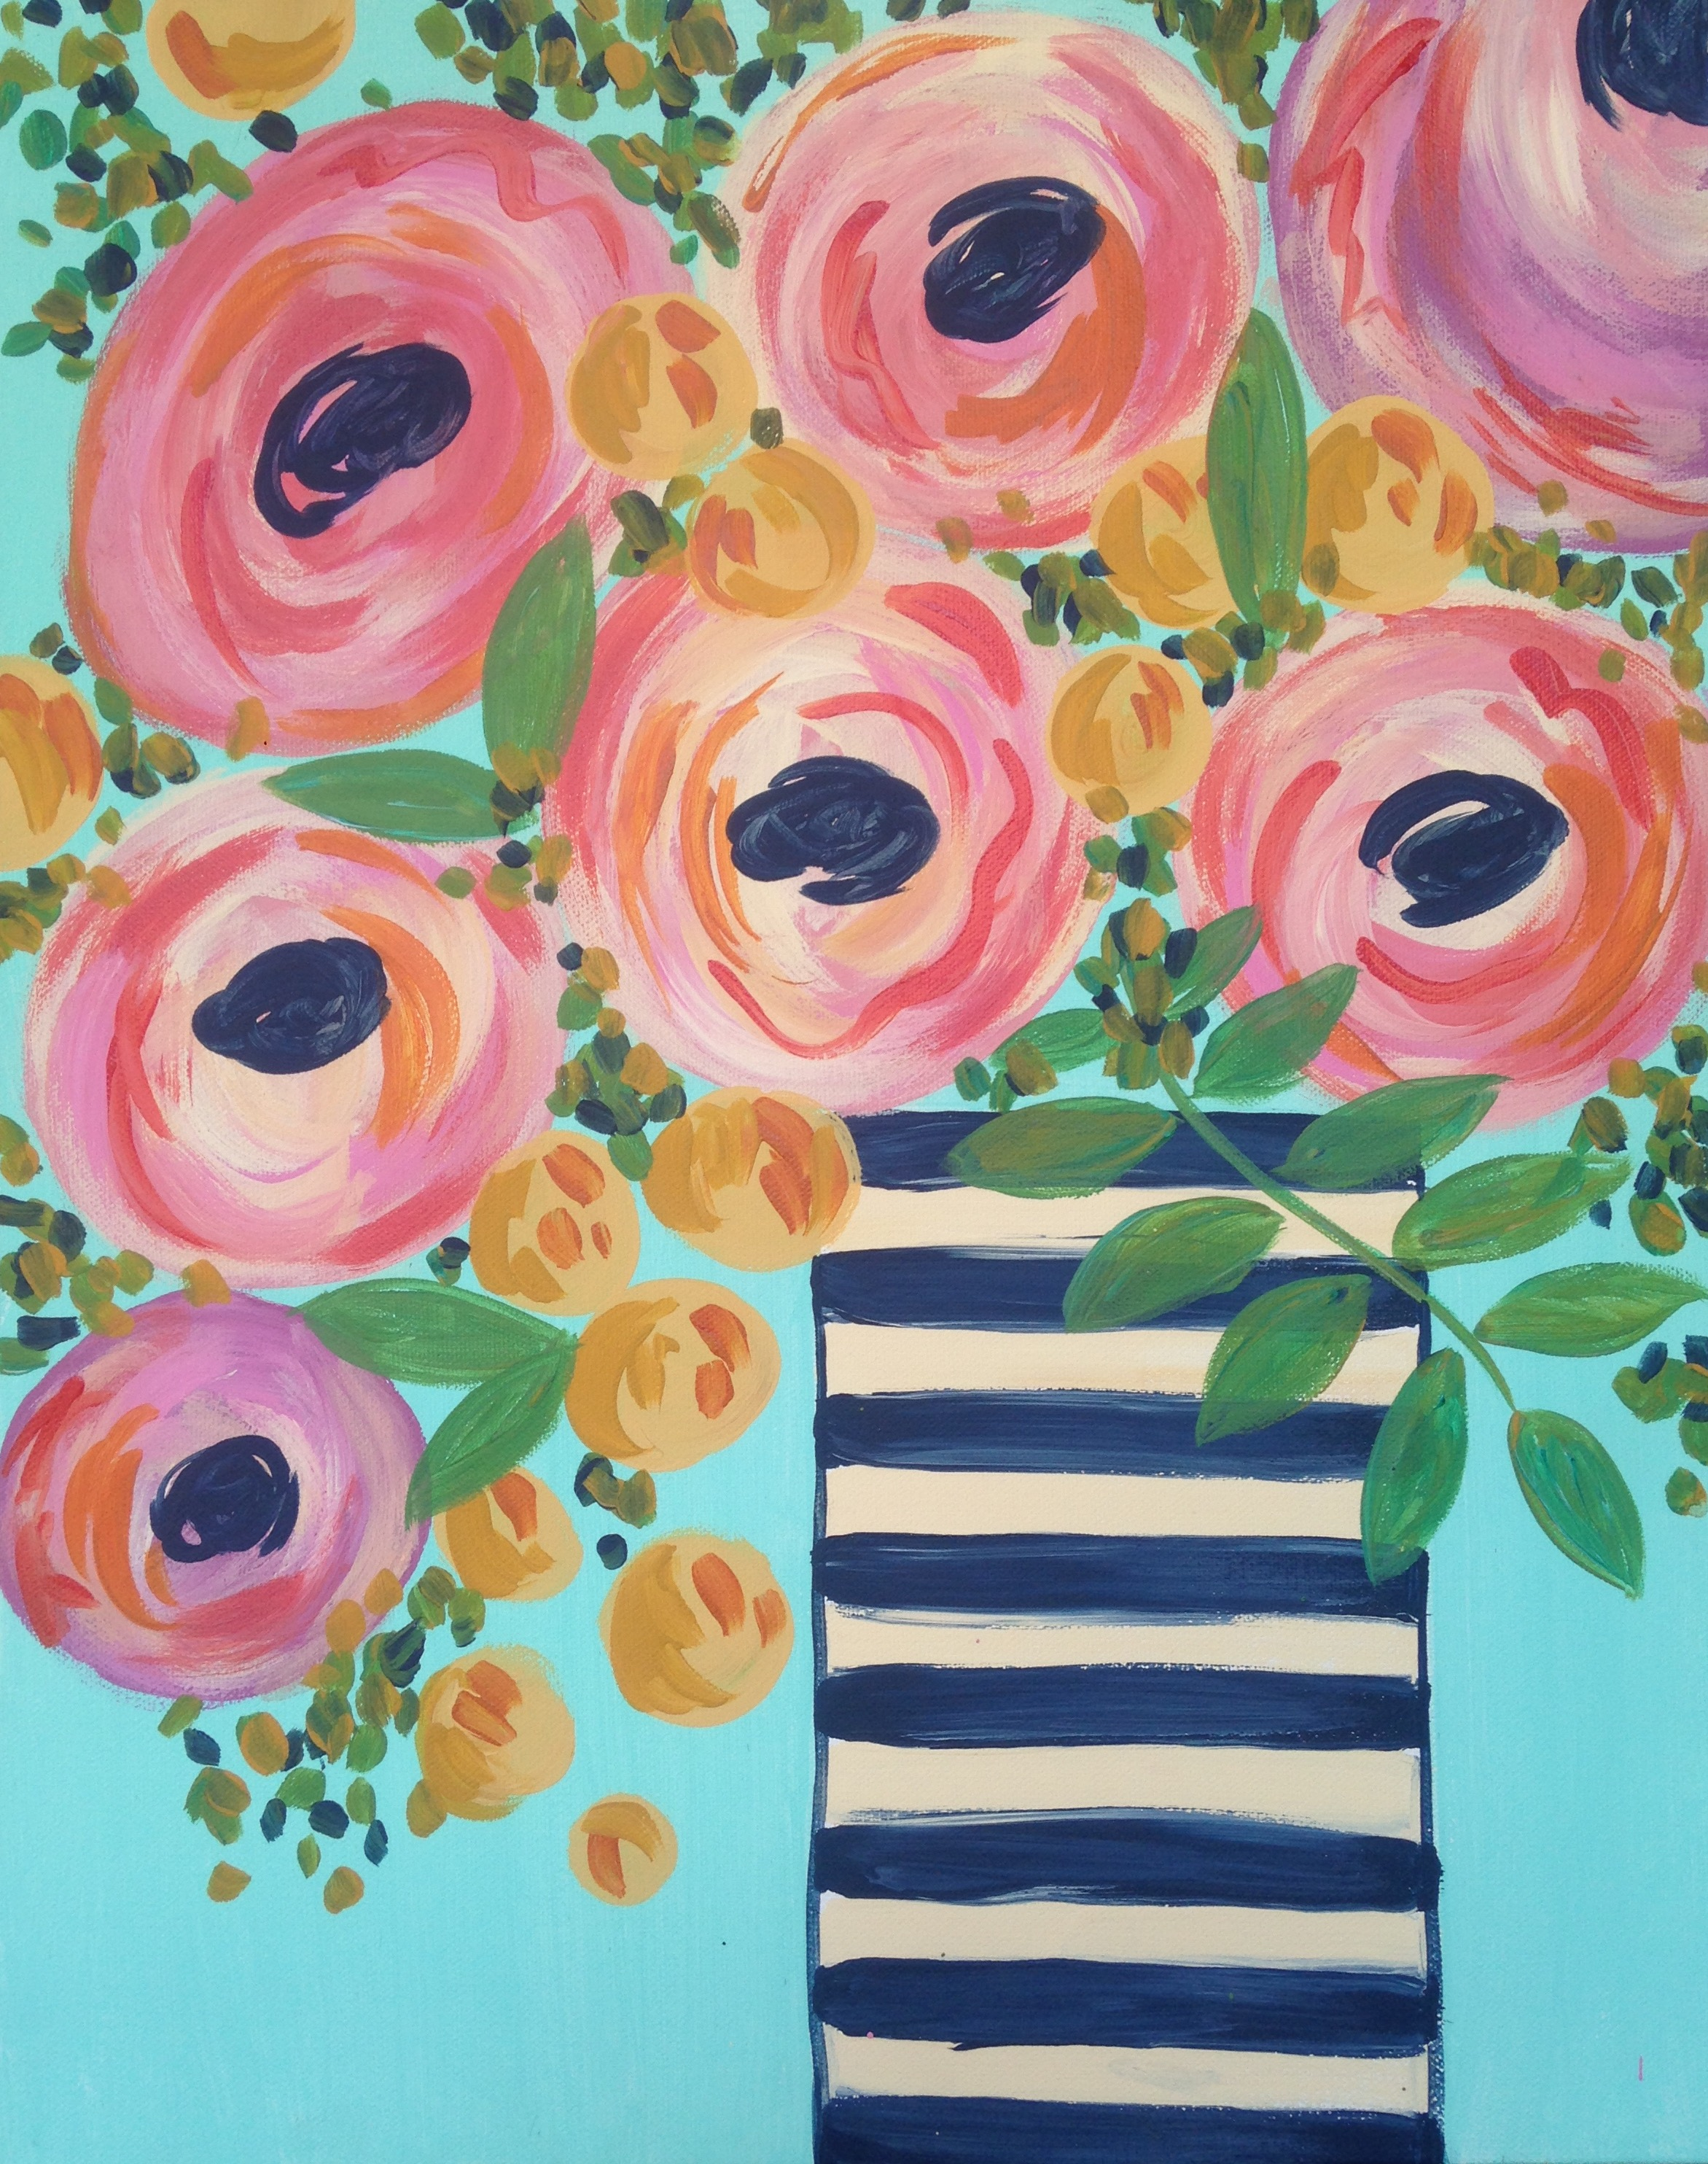 This vase of flowers is inspired by modern yet soft home décor, which will be so fun to paint! Let your own creativity flourish and customize your colors to fit your style!